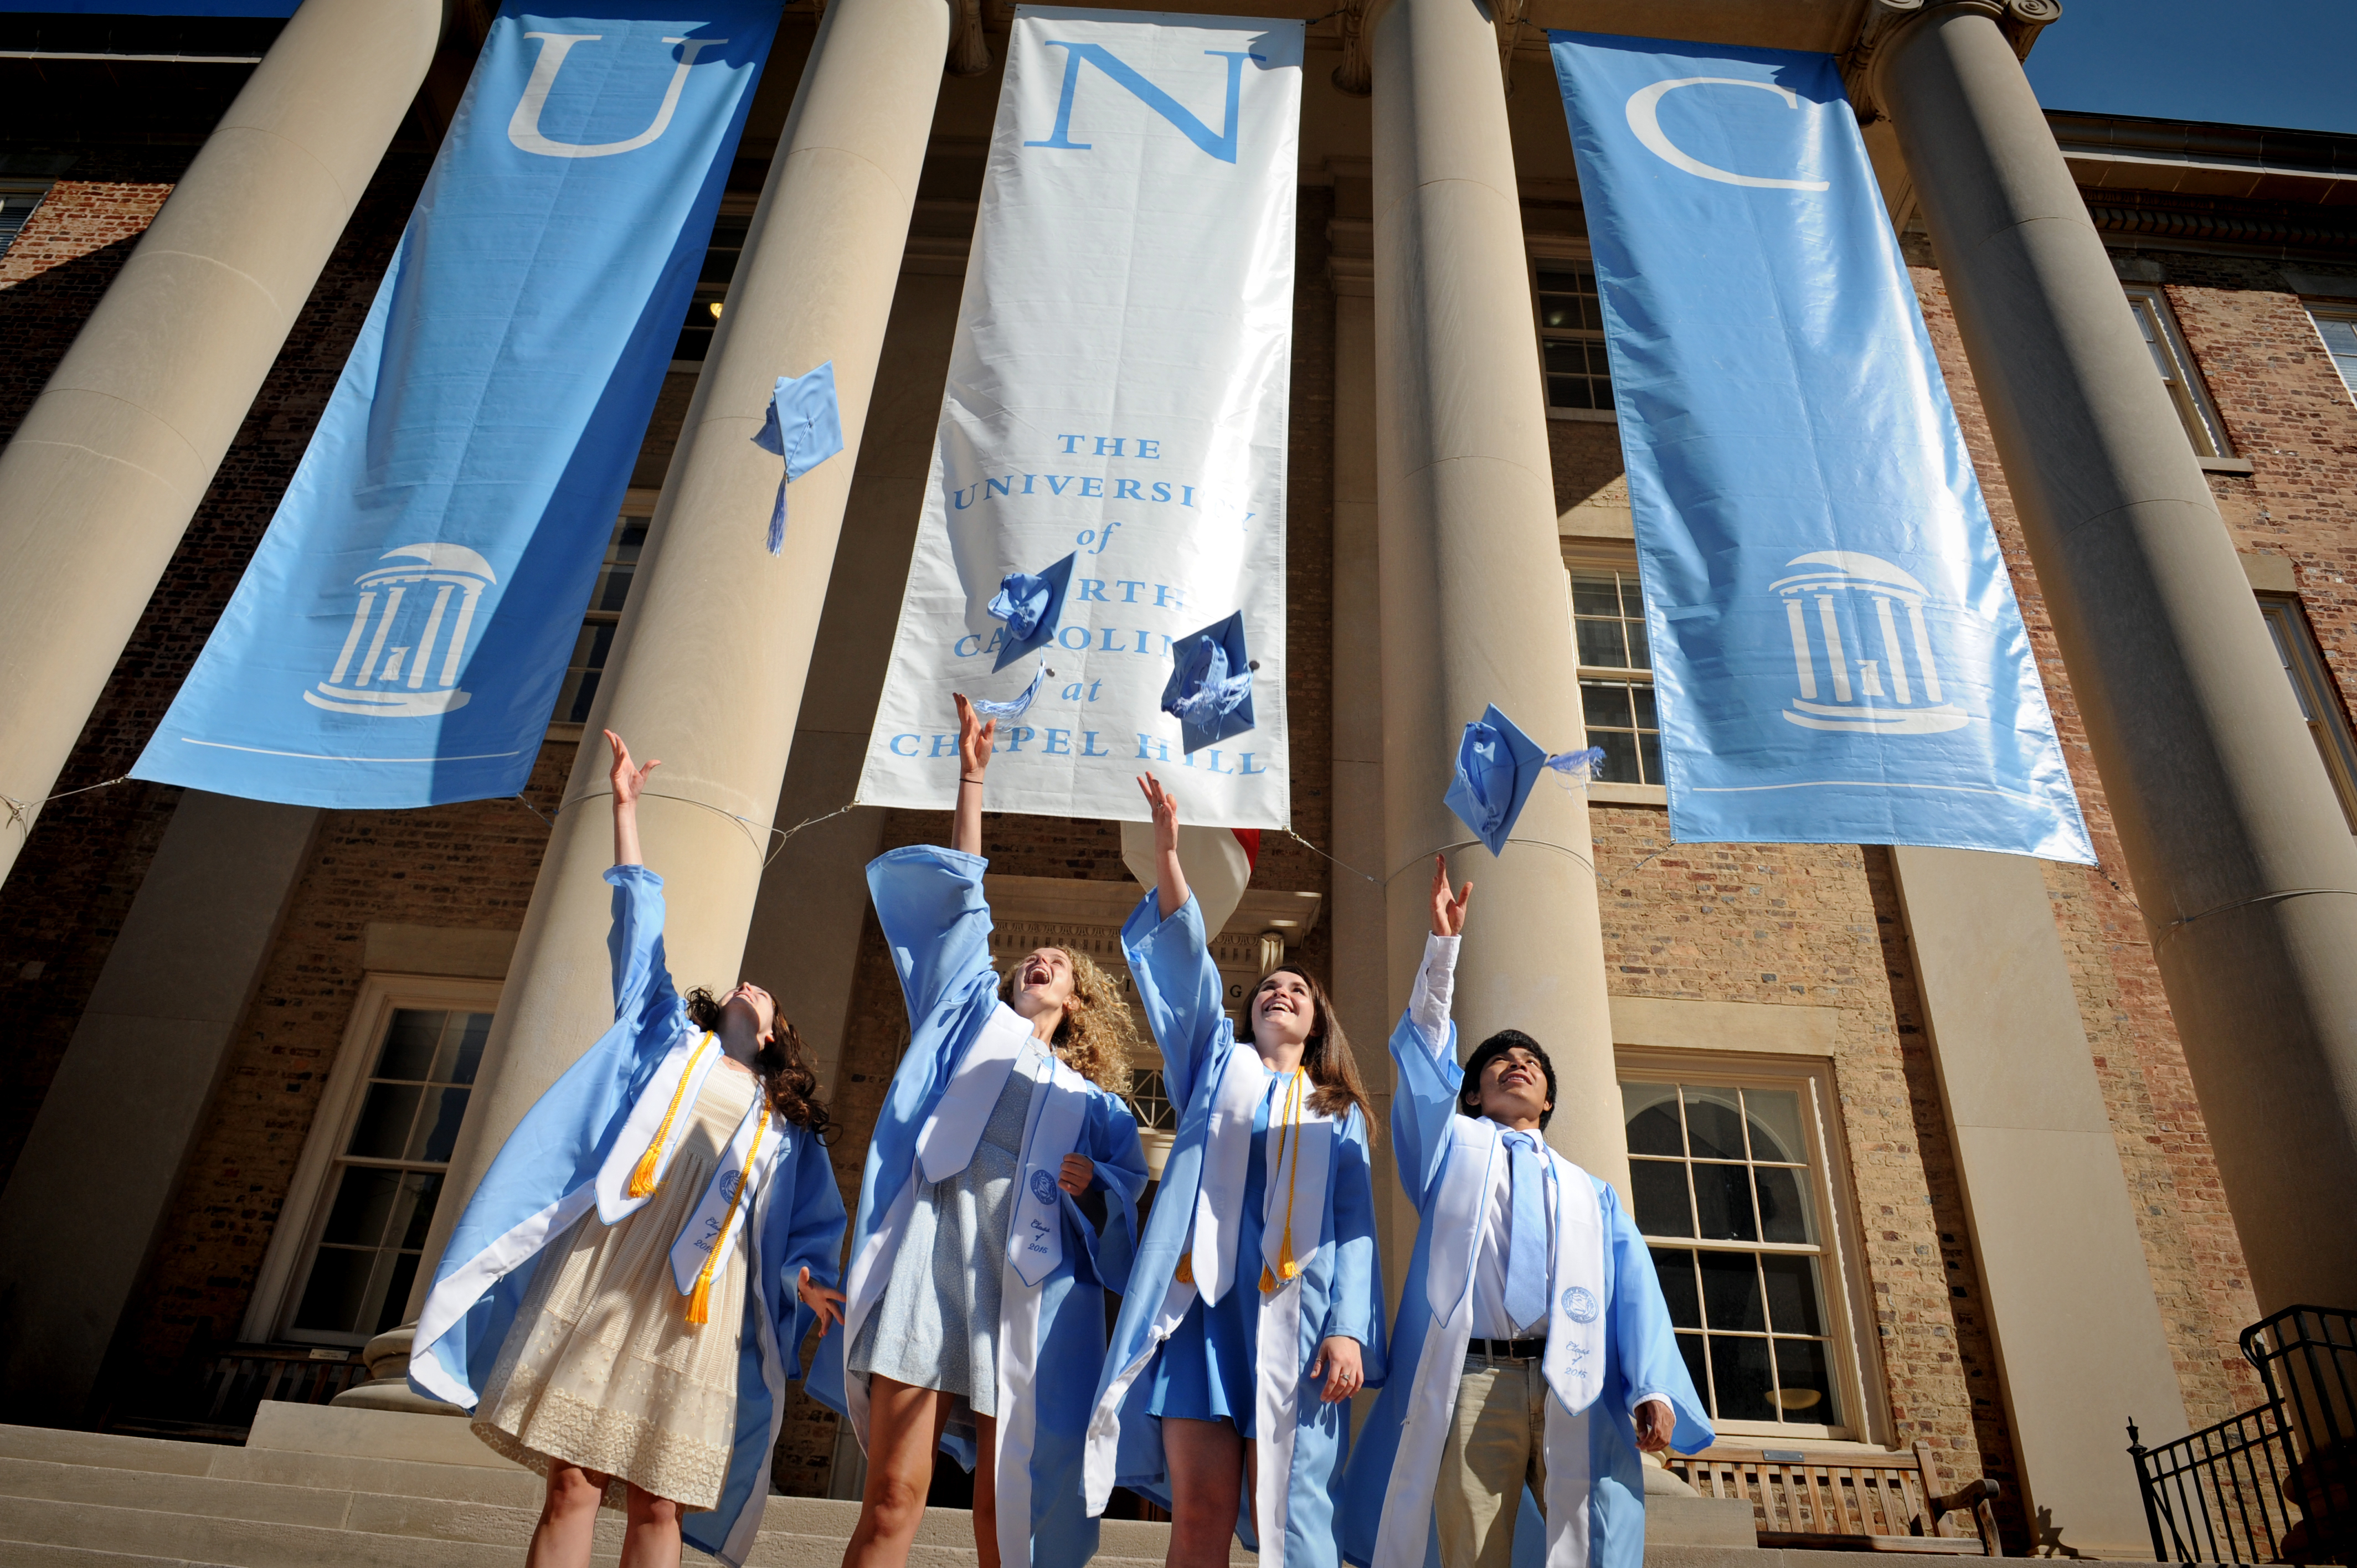 UNC Chapel Hill Graduates throwing their caps